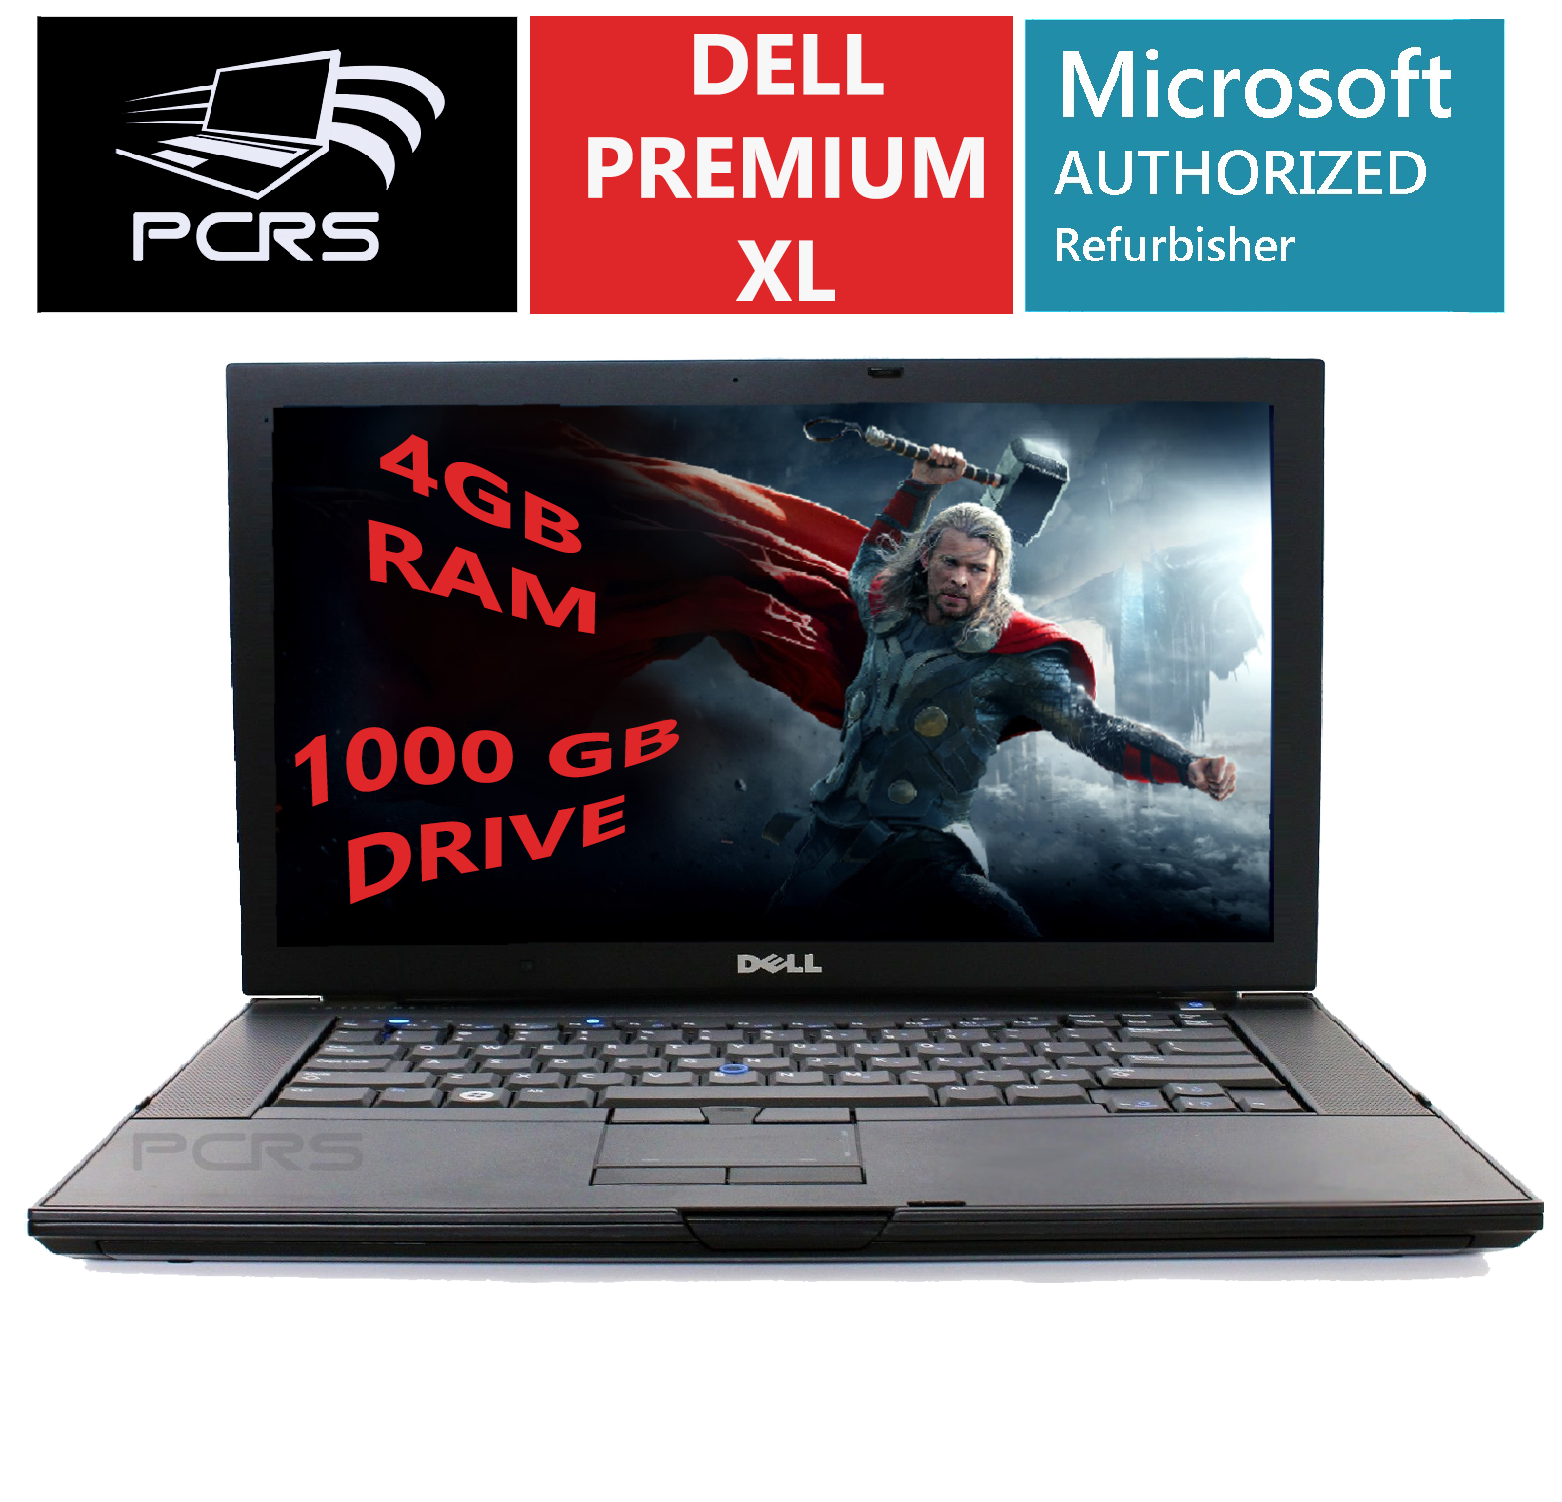 "Laptop Windows - DELL Latitiude 15.4"" HD Screen Laptop Intel 2.4GHz 4GB 1TB DVD+RW Windows 10"